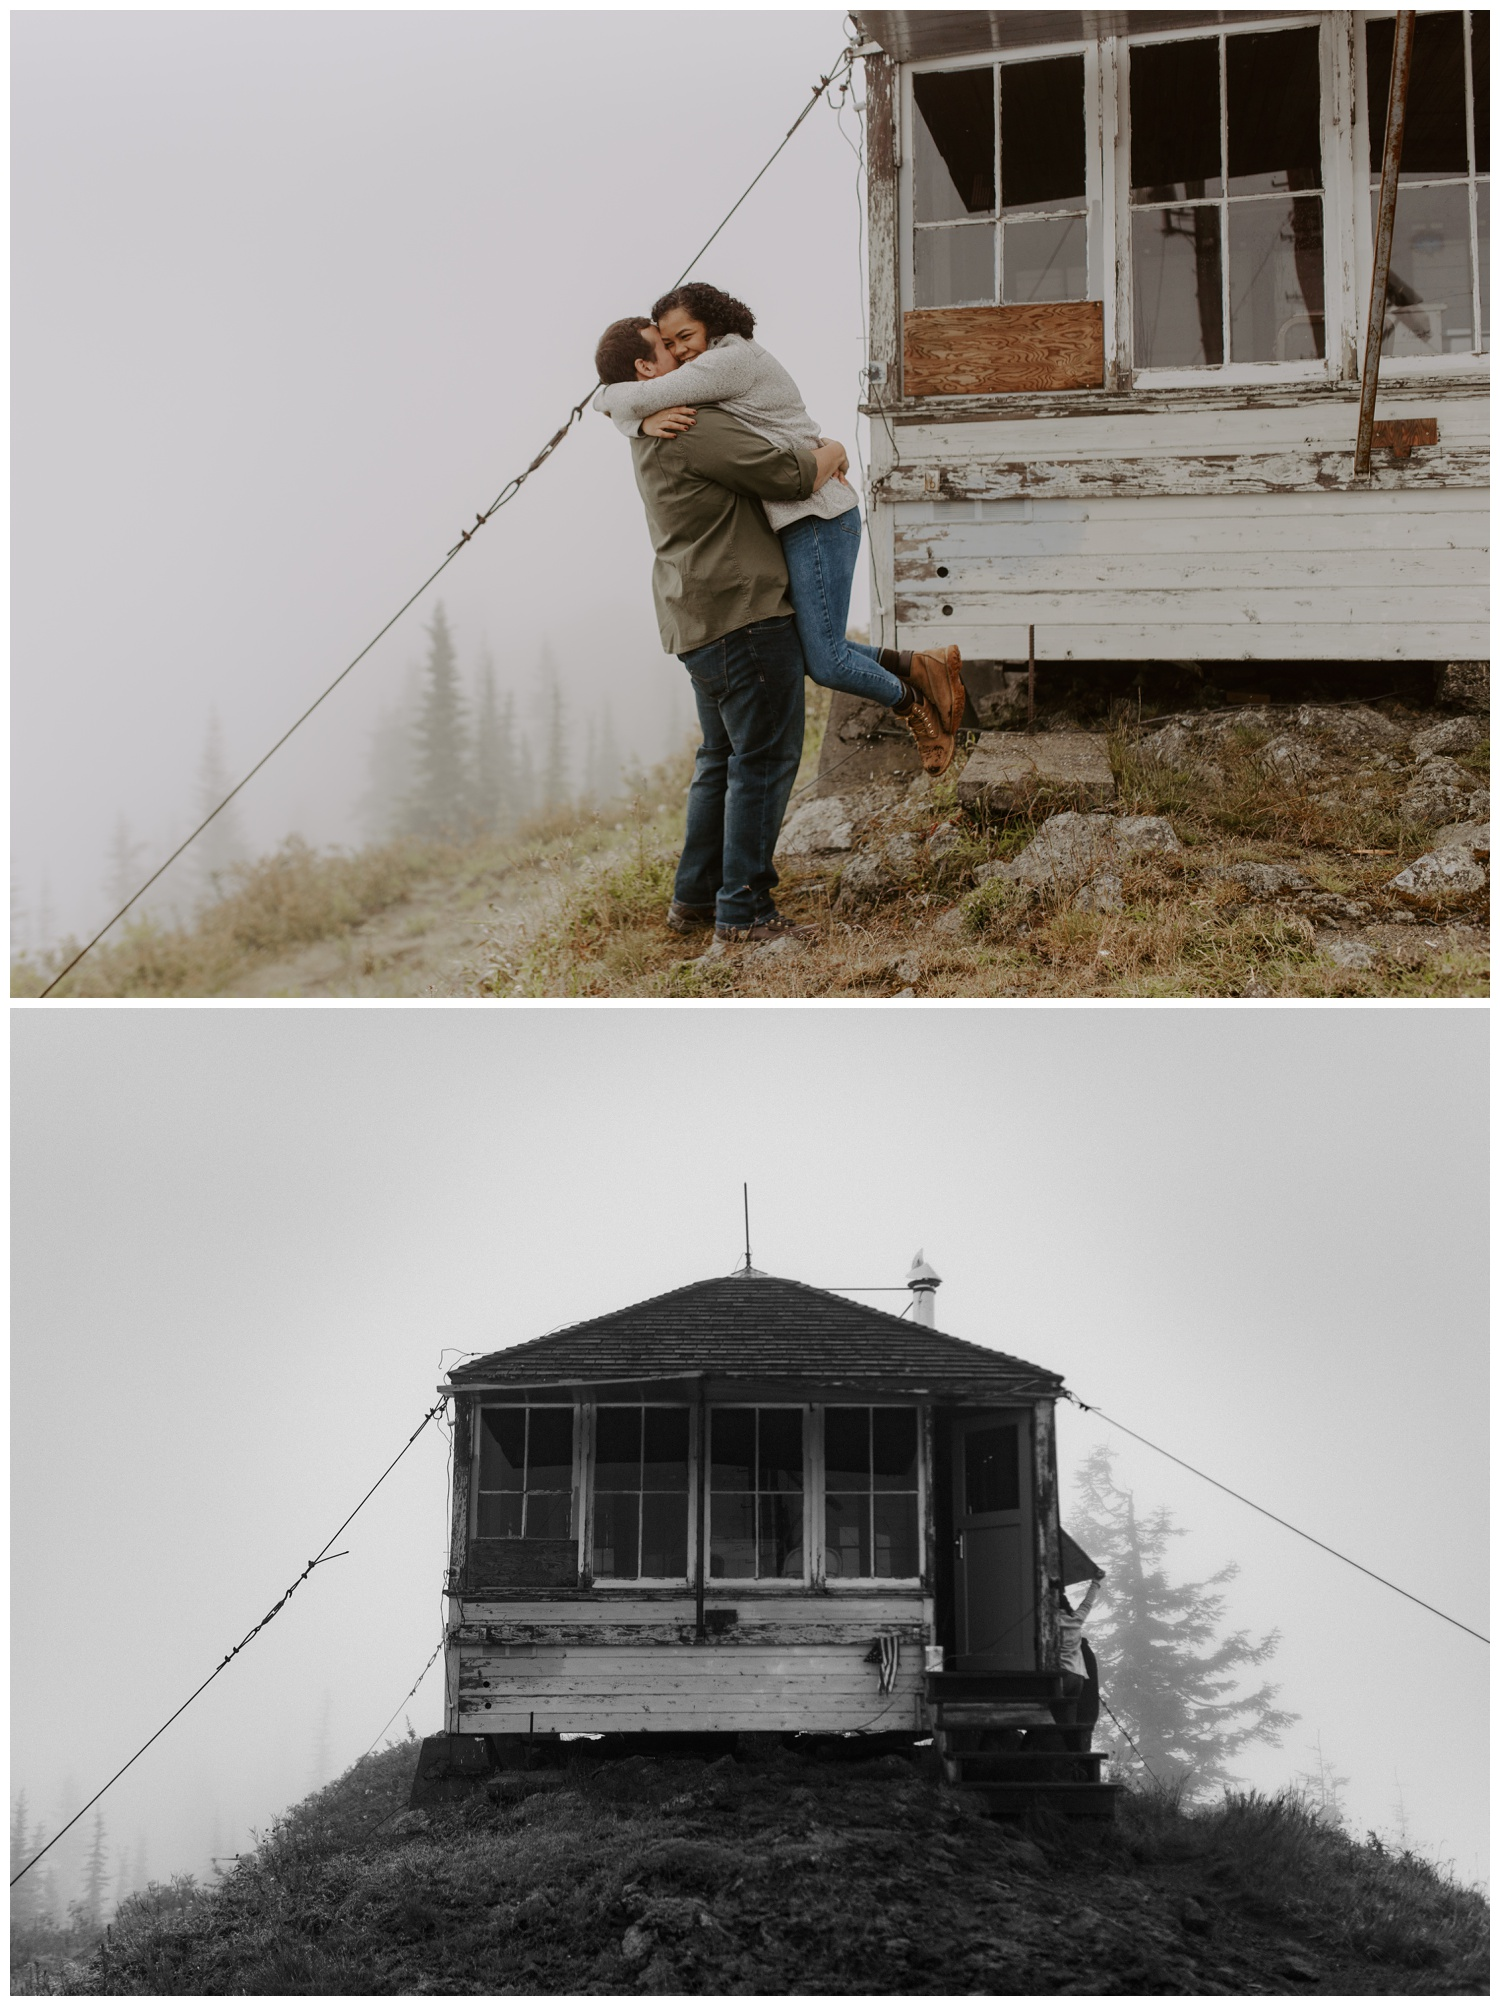 Washington Fire Lookout Engagements Jessica Heron Images 003.JPG